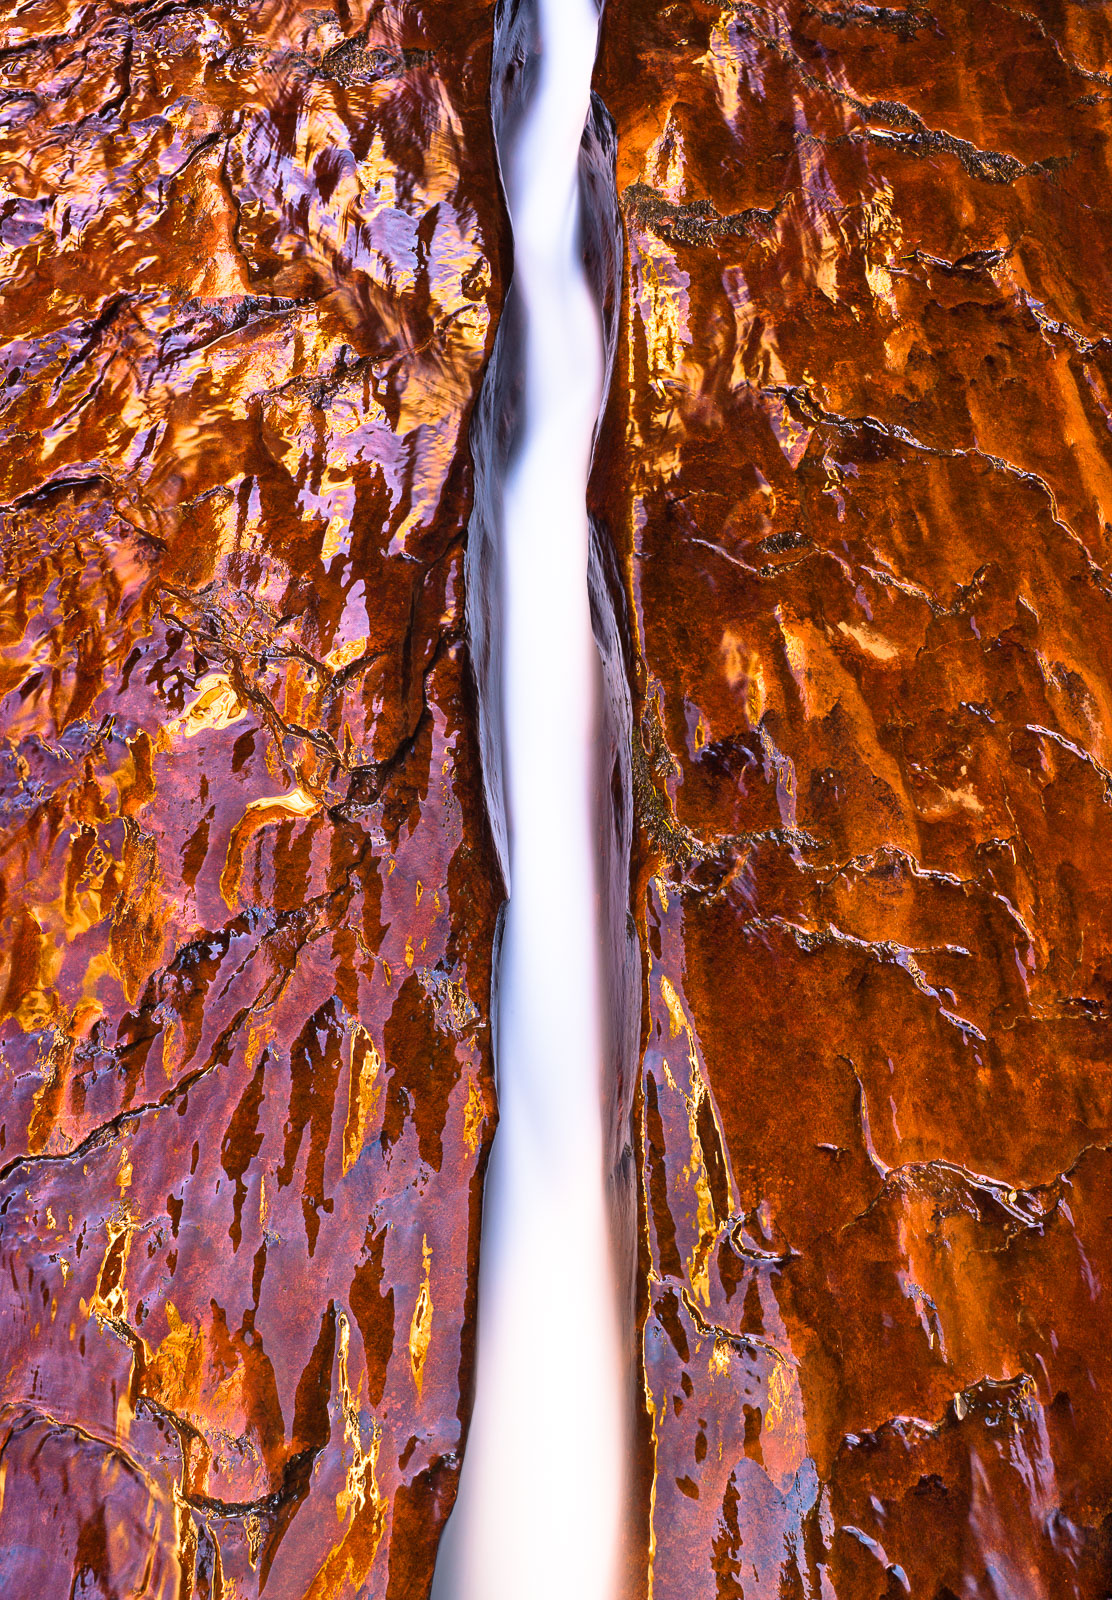 A Copper Fall,Desert,Orange,Utah,Zion National Park,landscape, photo